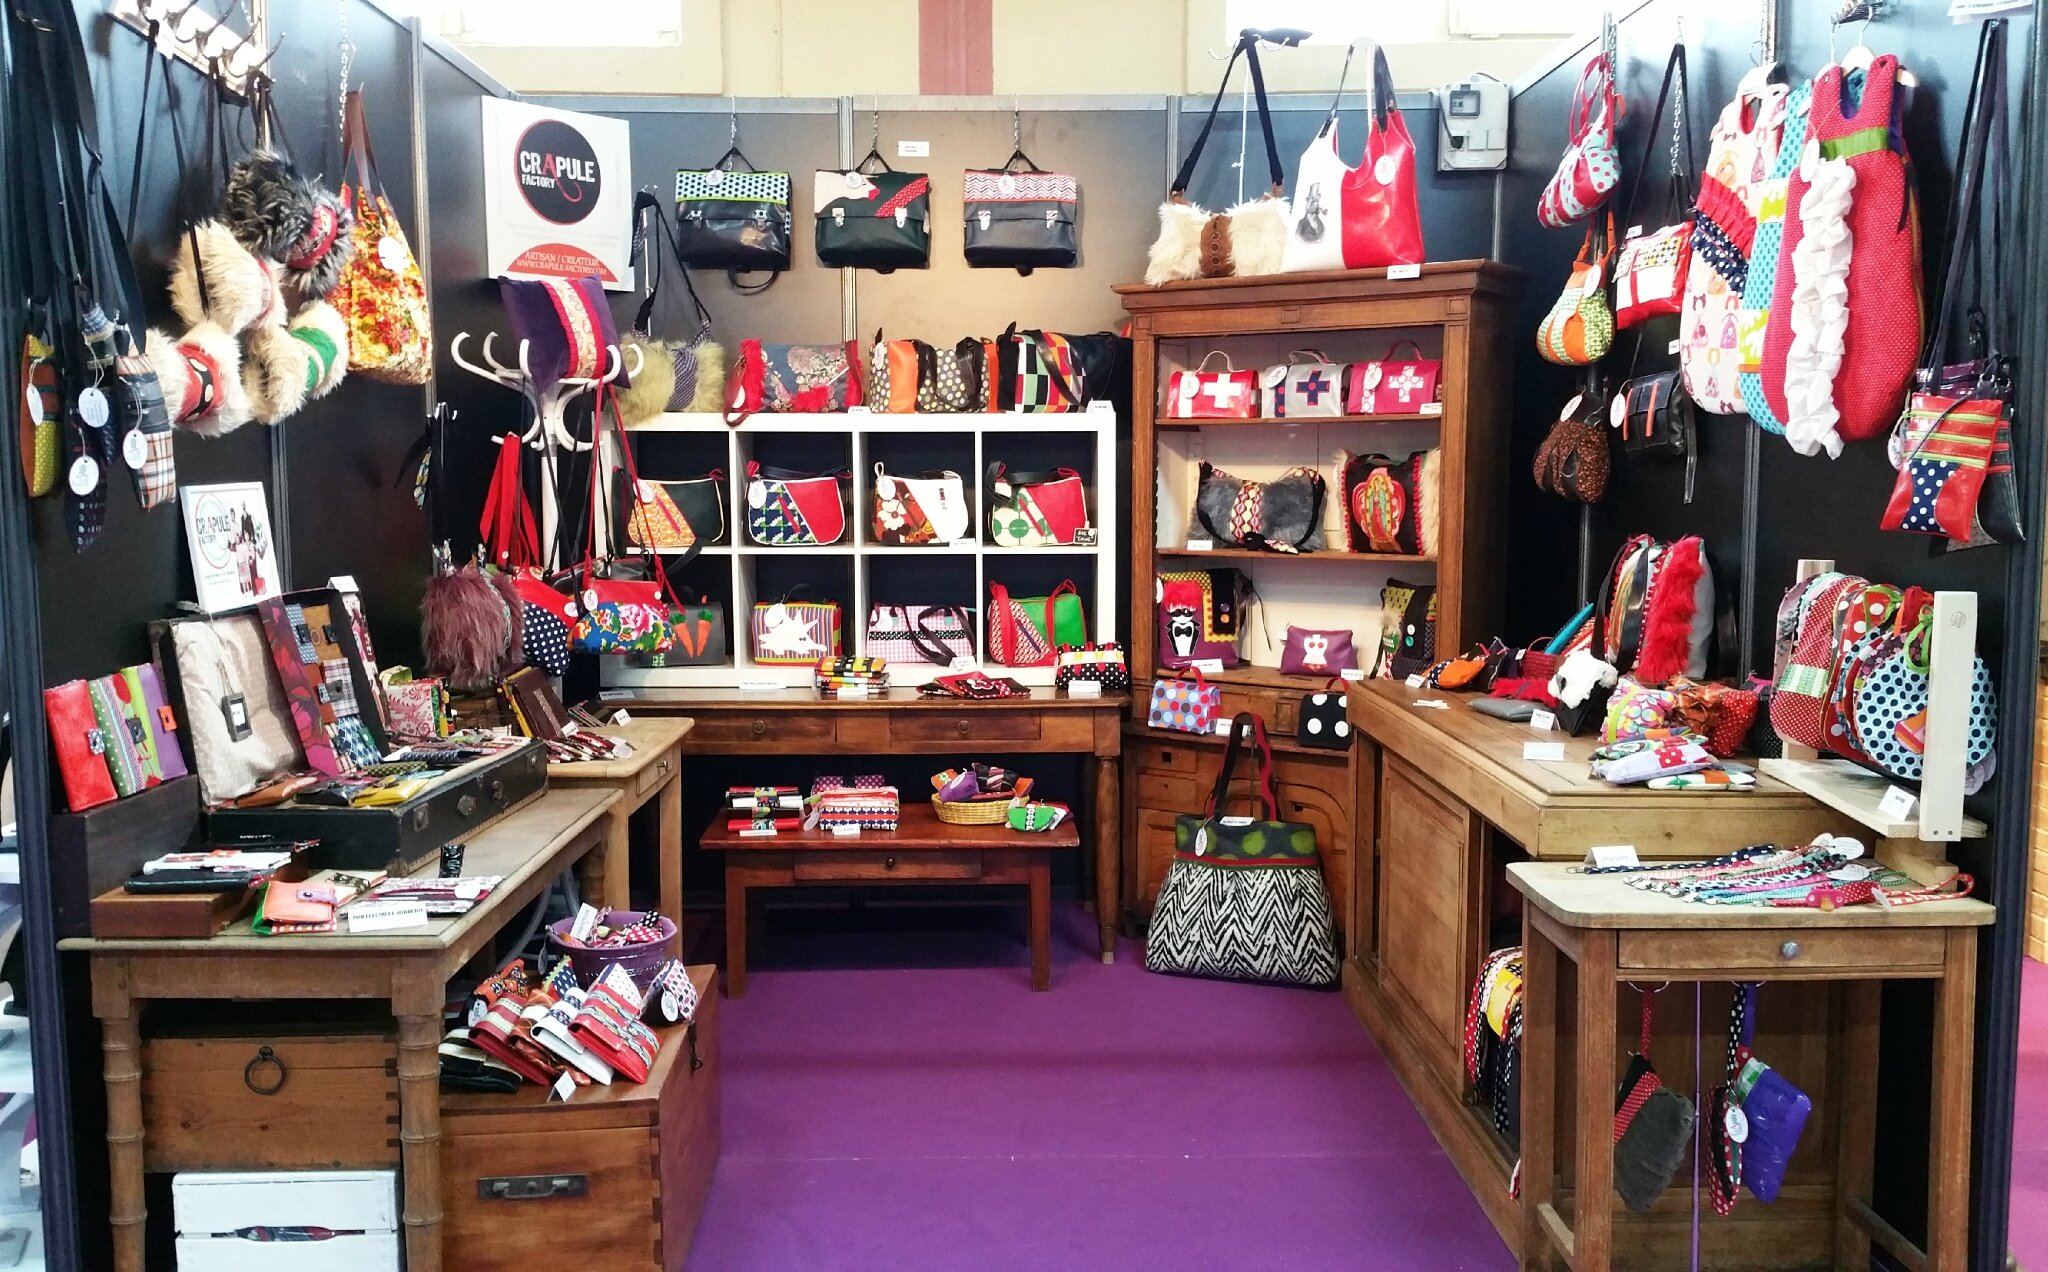 Stand de crapule factory au salon de l 39 artisanat de for Salon exposition